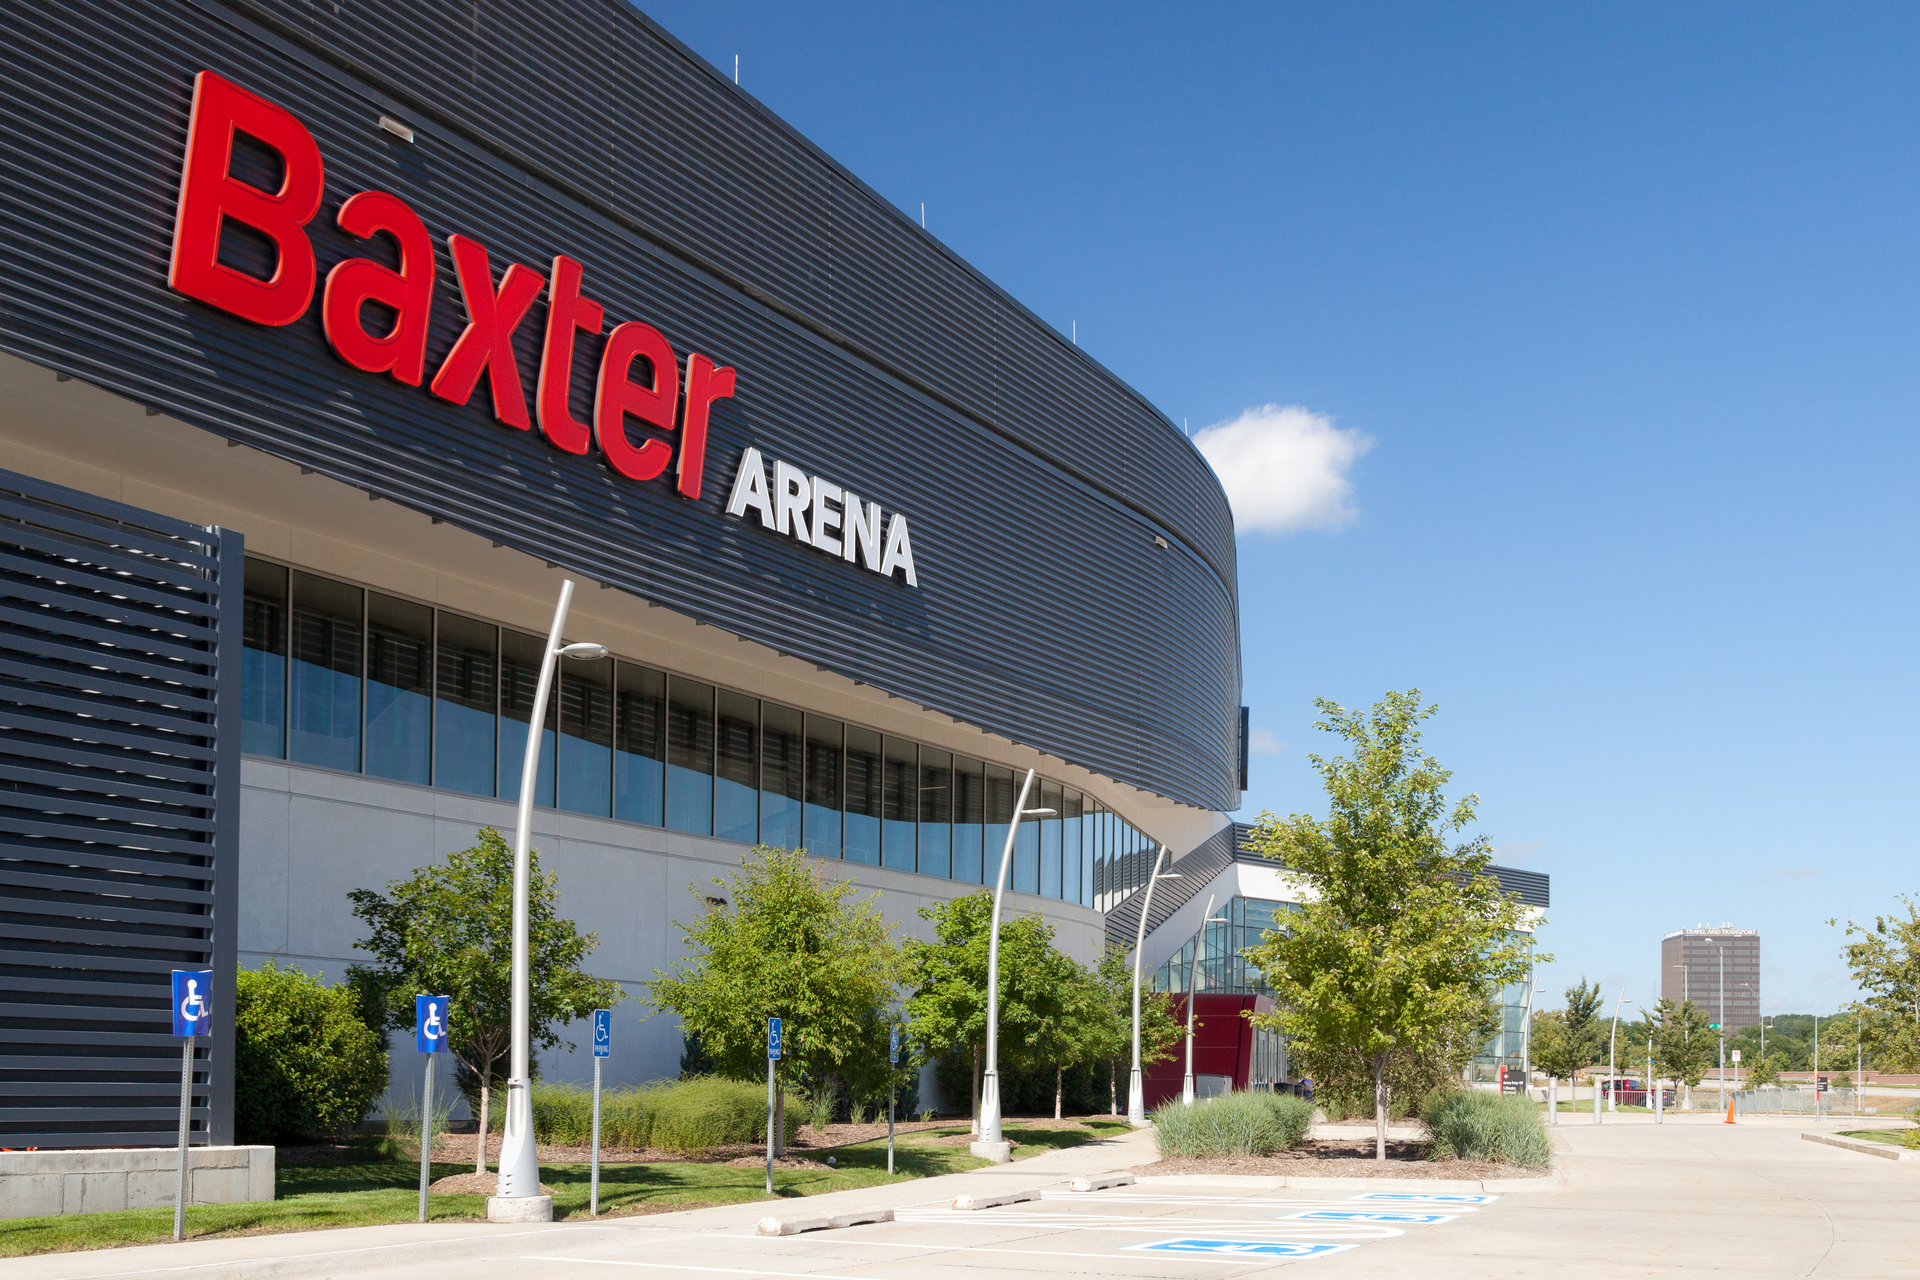 The outdoor parking areas at the Baxter Arena features our Flight Pole with mounted lighting fixtures to welcome guests and visitors to the stadium.